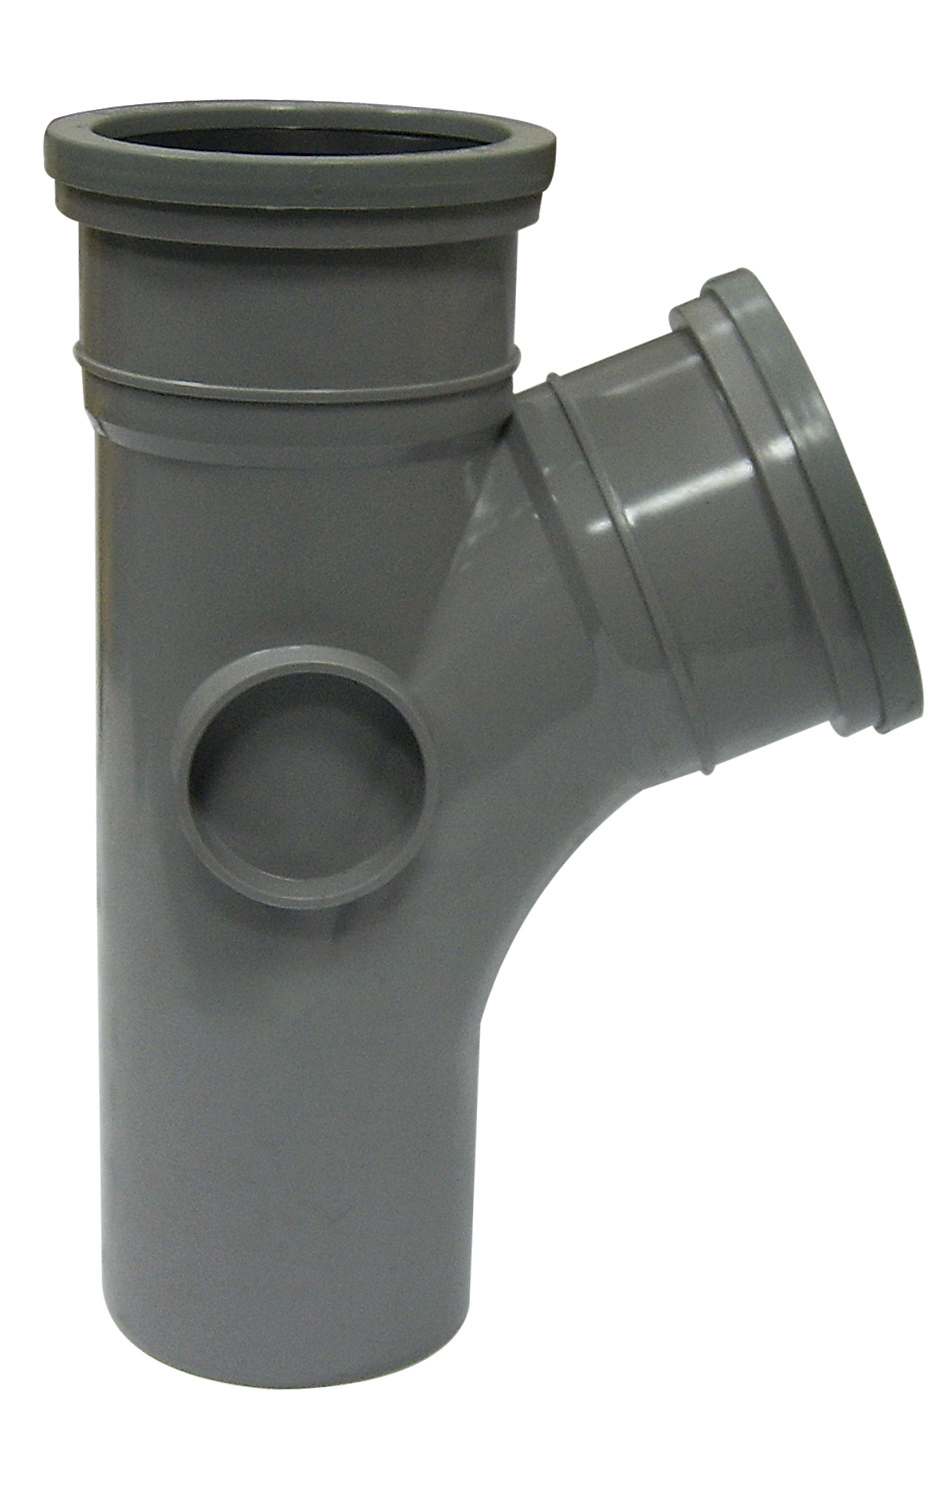 "Floplast SP200GR 110mm/4"" Ring Seal Soil System - 112.5 Degree Branch Double Socket - Grey"